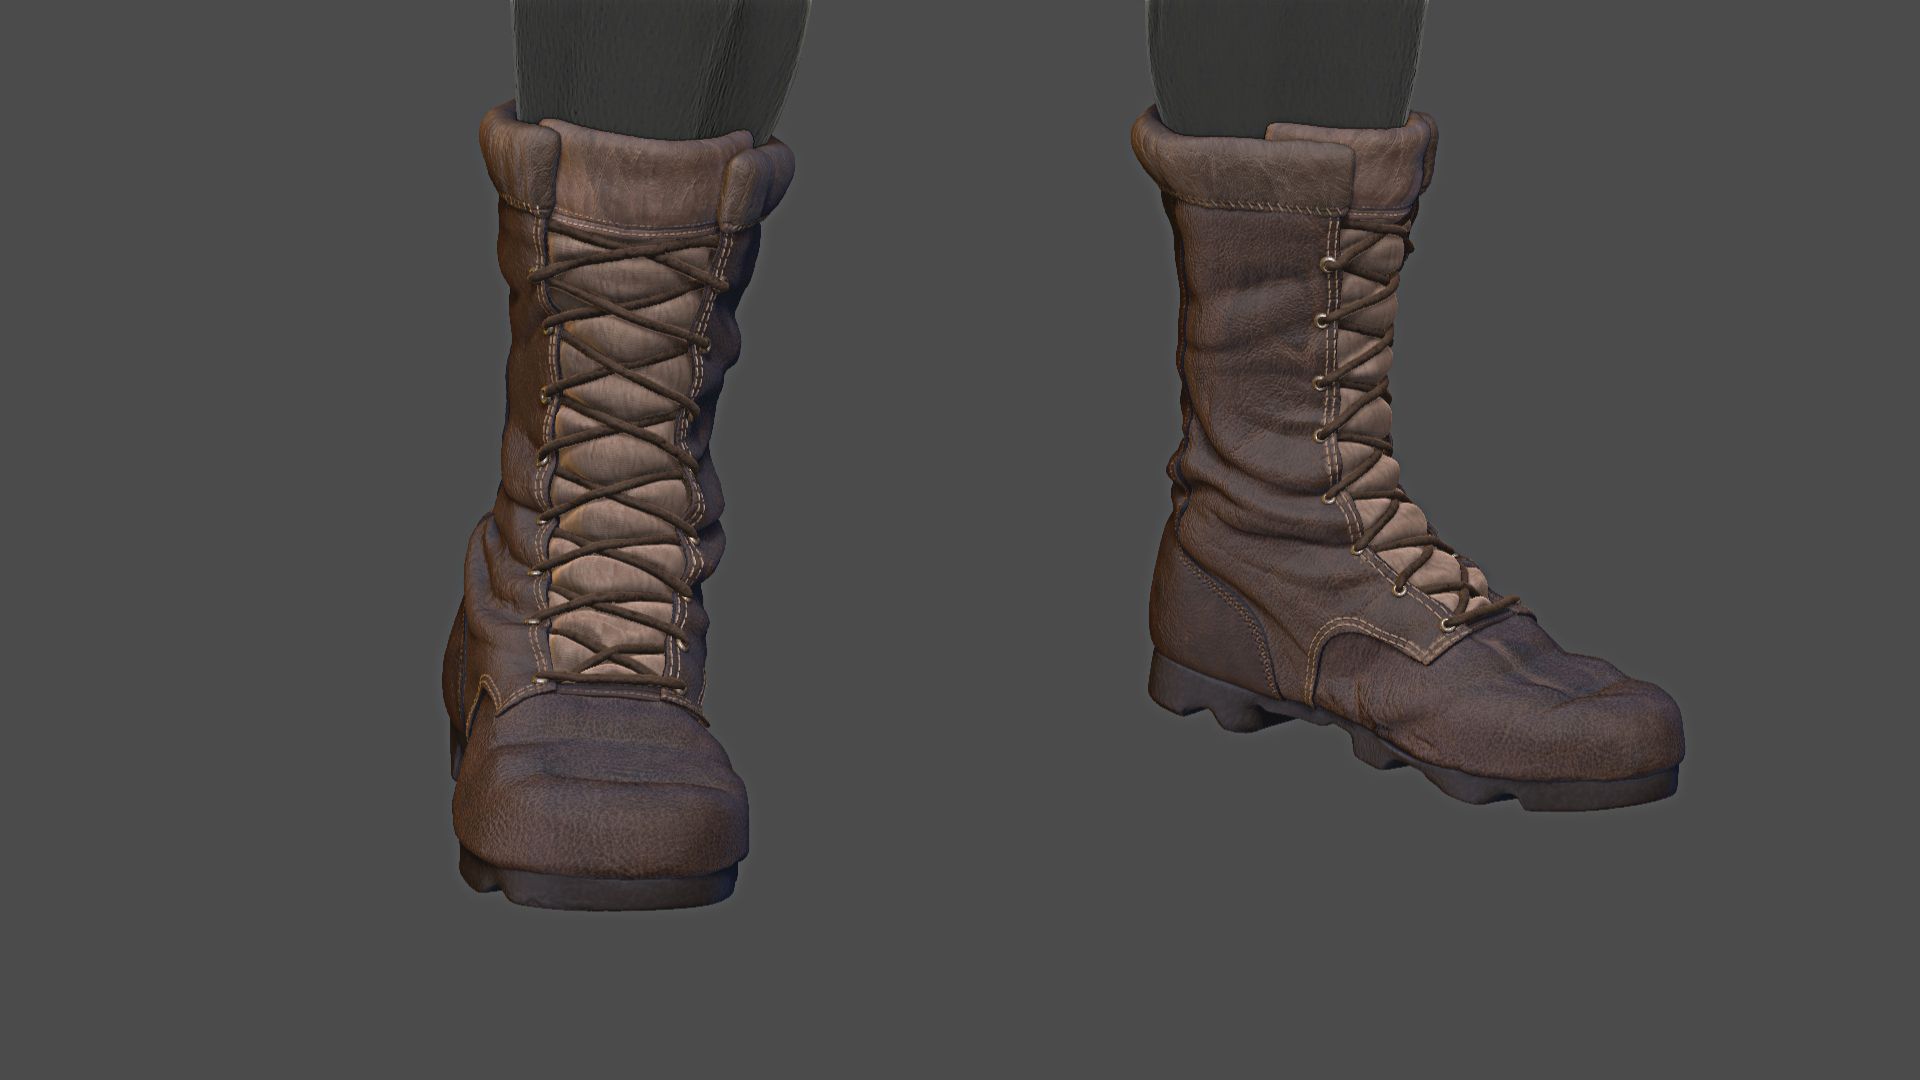 Zbrush_Boots.jpg